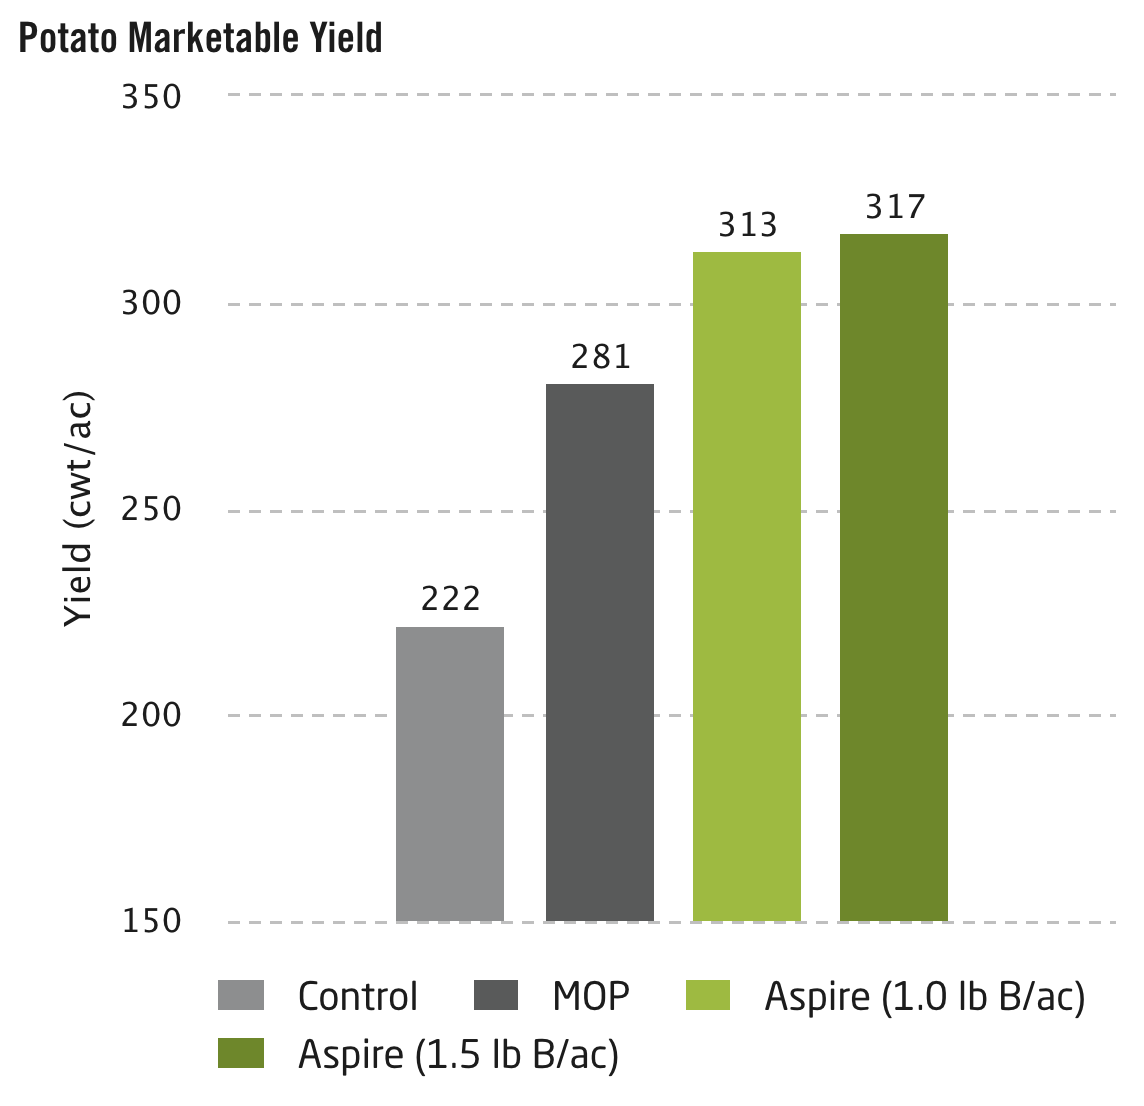 Potato Marketable Yield